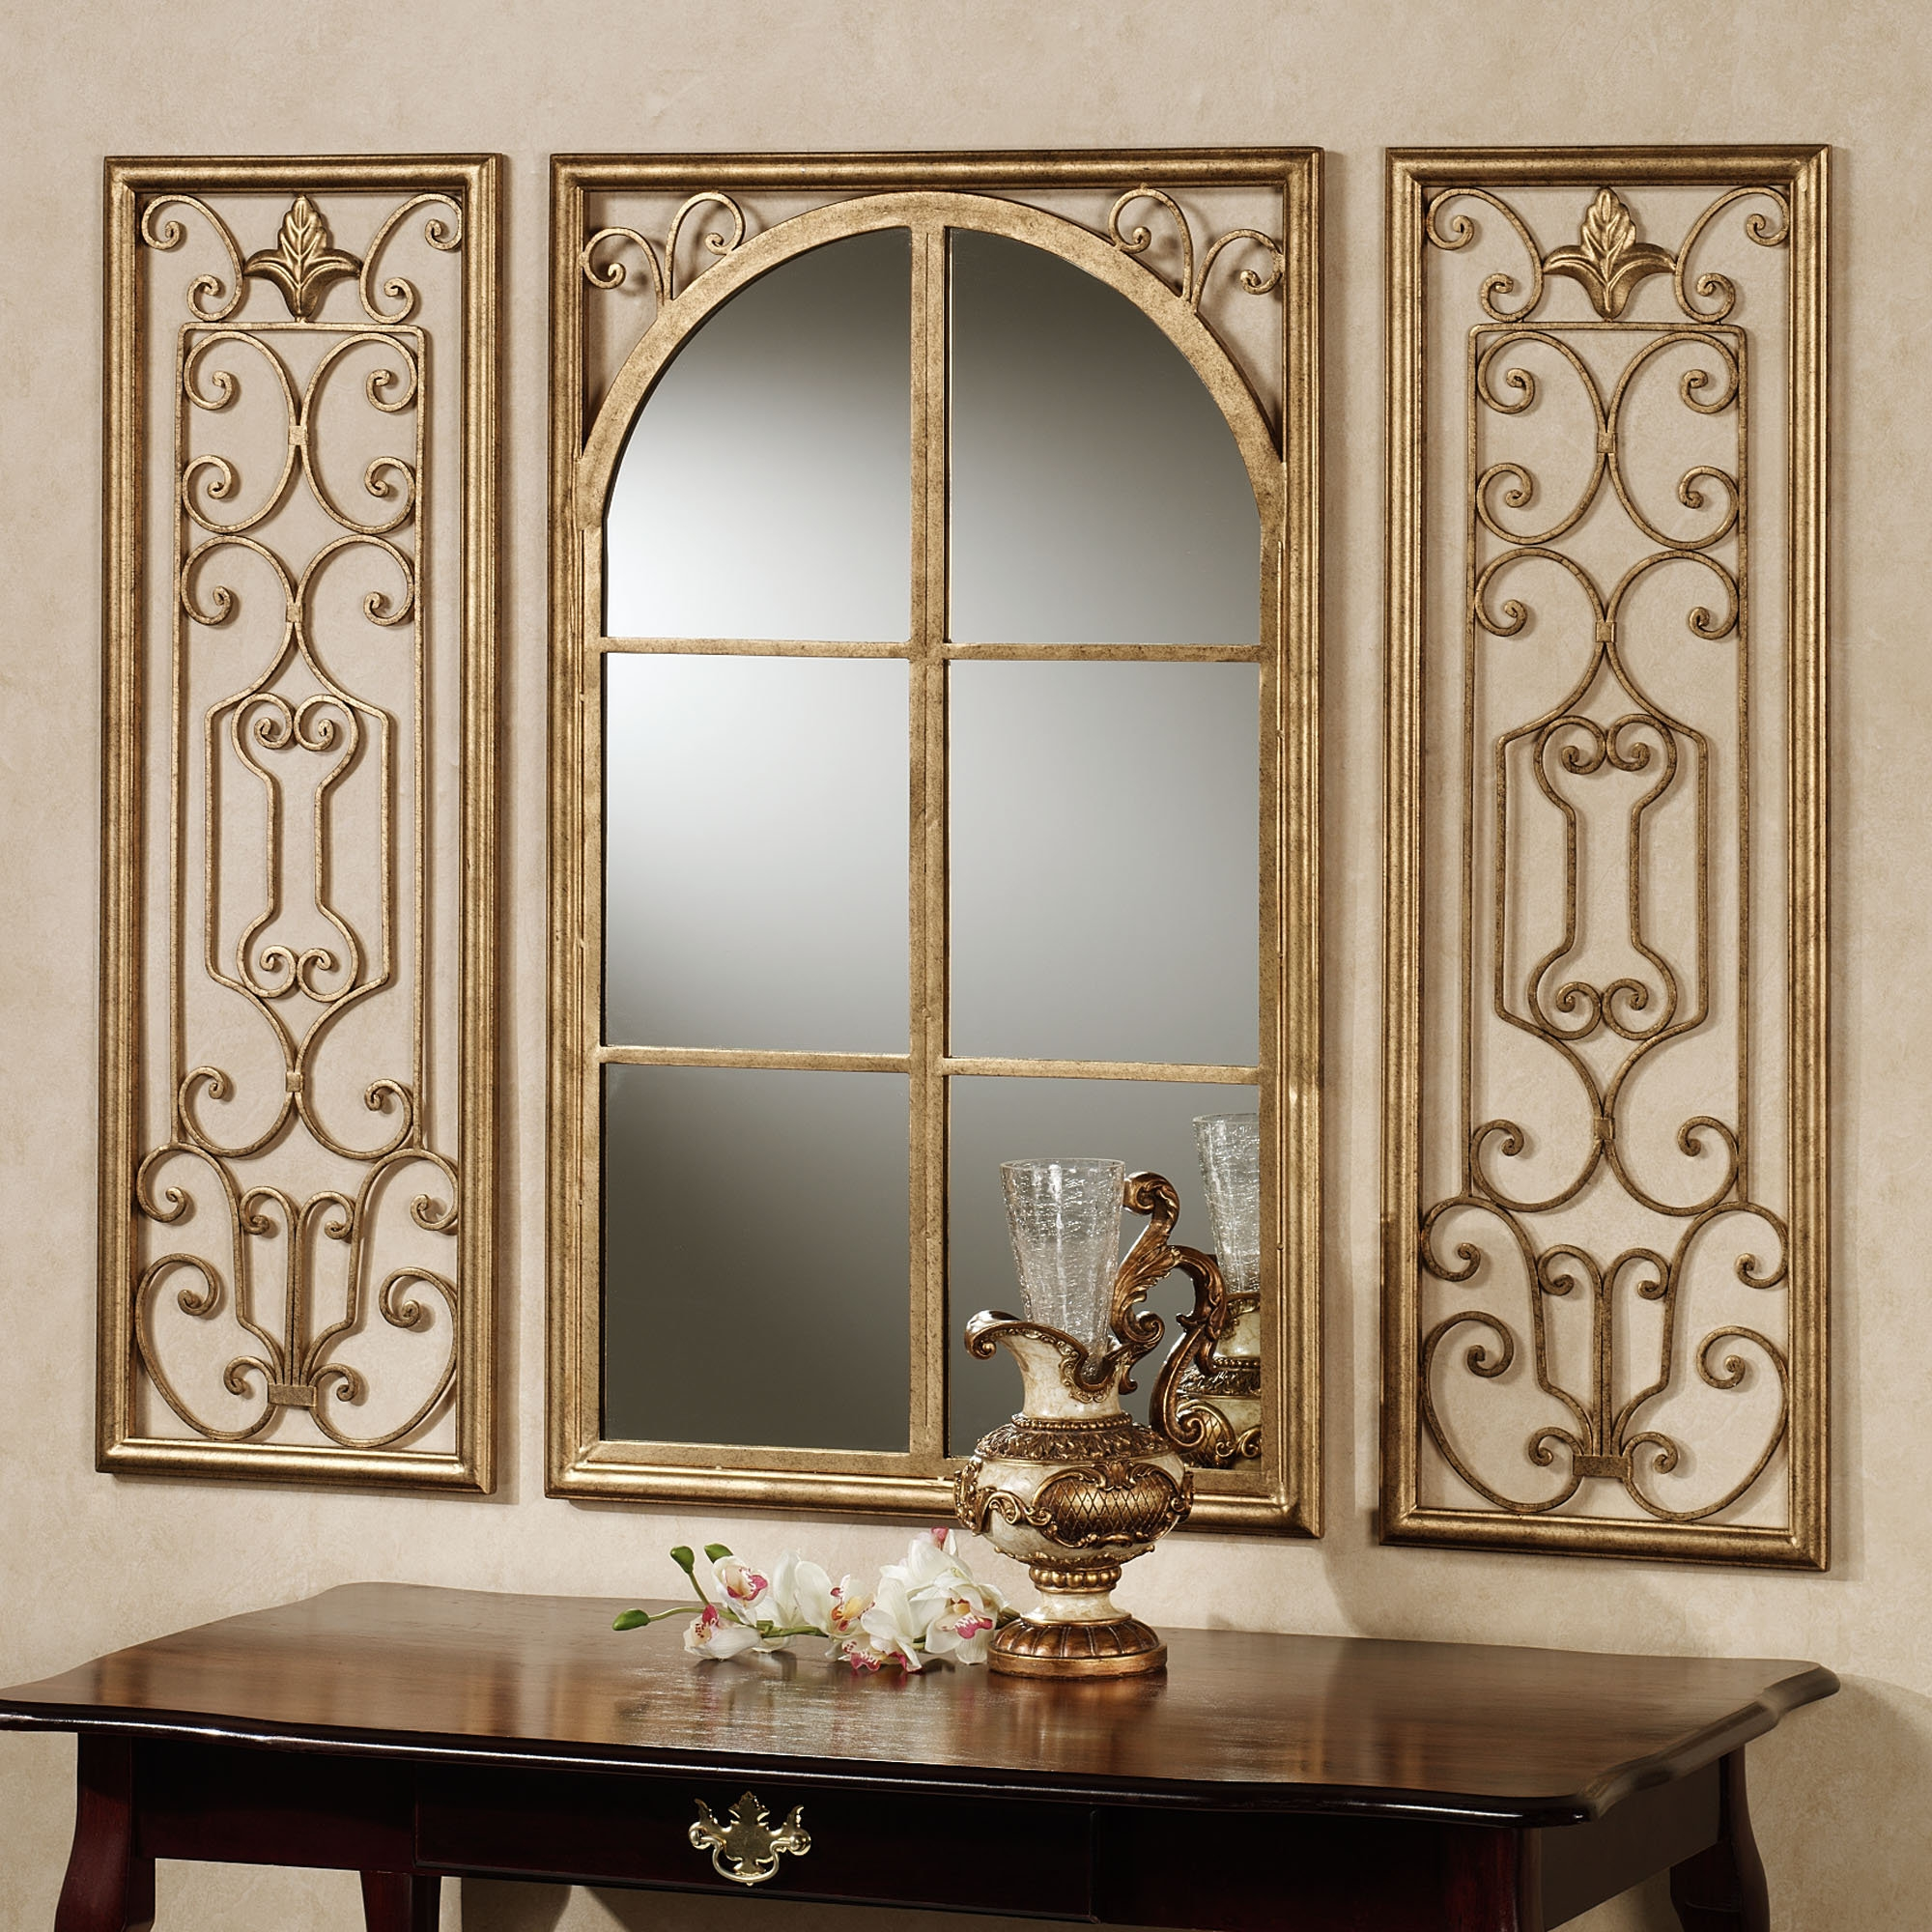 Wood Decorative Wall Mirrors